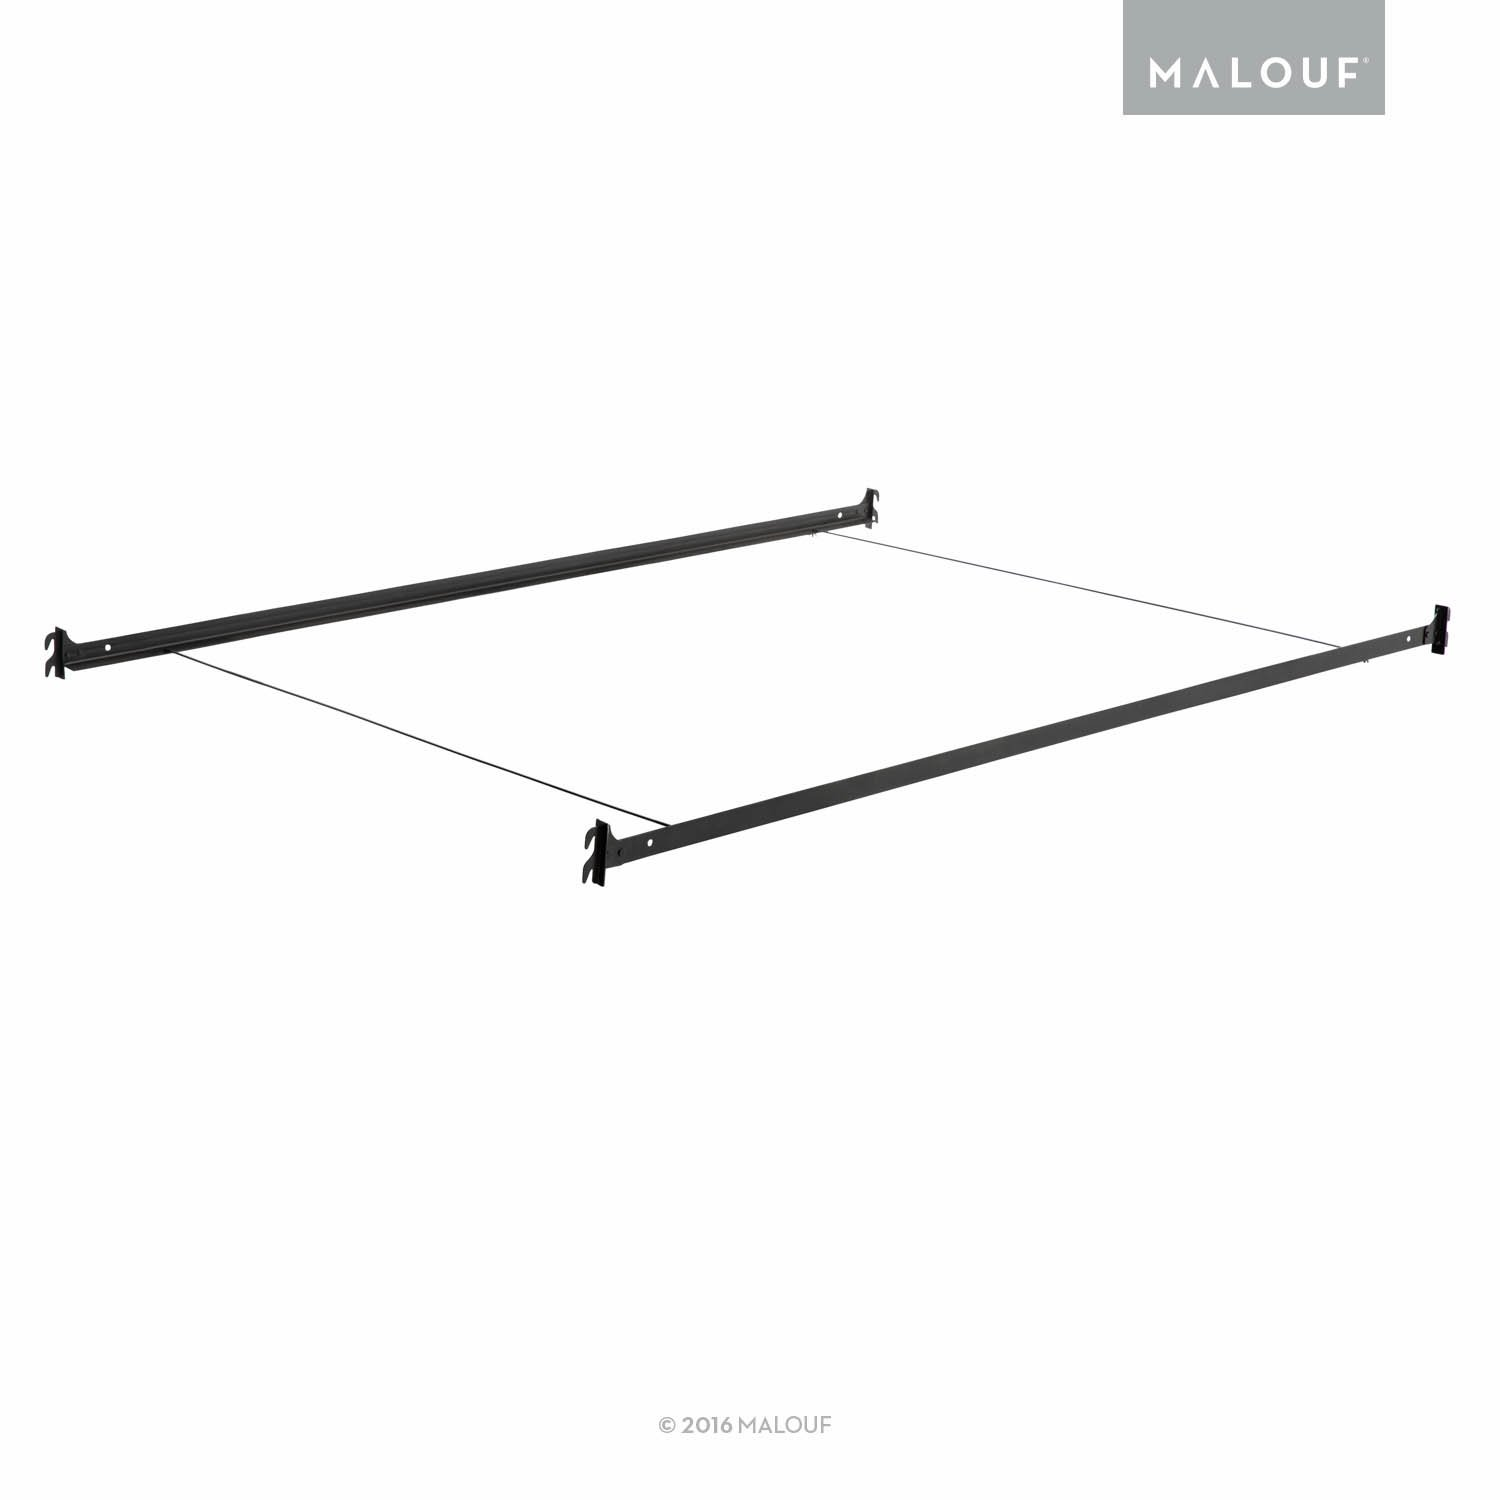 MALOUF Structures Hook-in Metal Bed Rail System with Cross Wires - Twin/Full by MALOUF